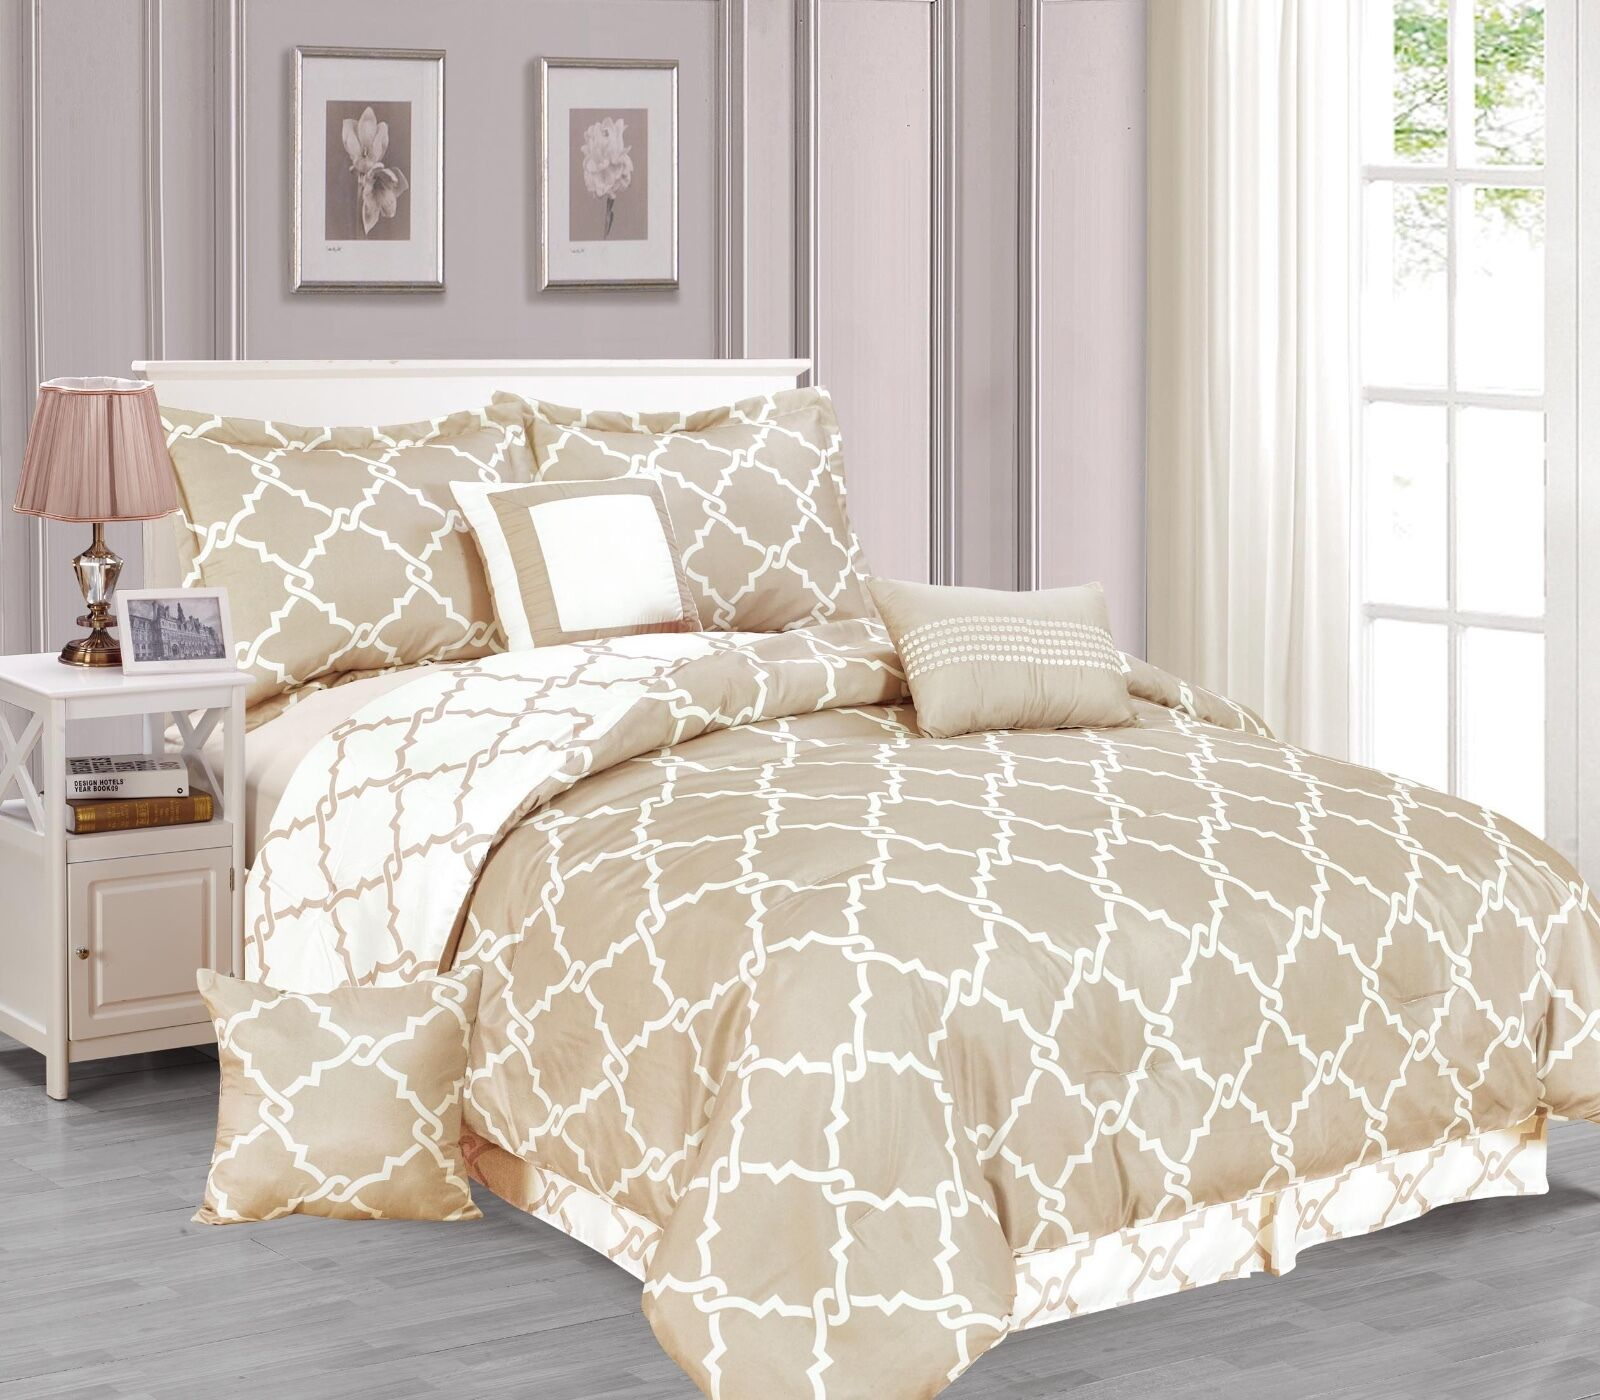 Galaxy 7-Piece Comforter Set Reversible Soft OverGrößed Bedding Weiß & Taupe